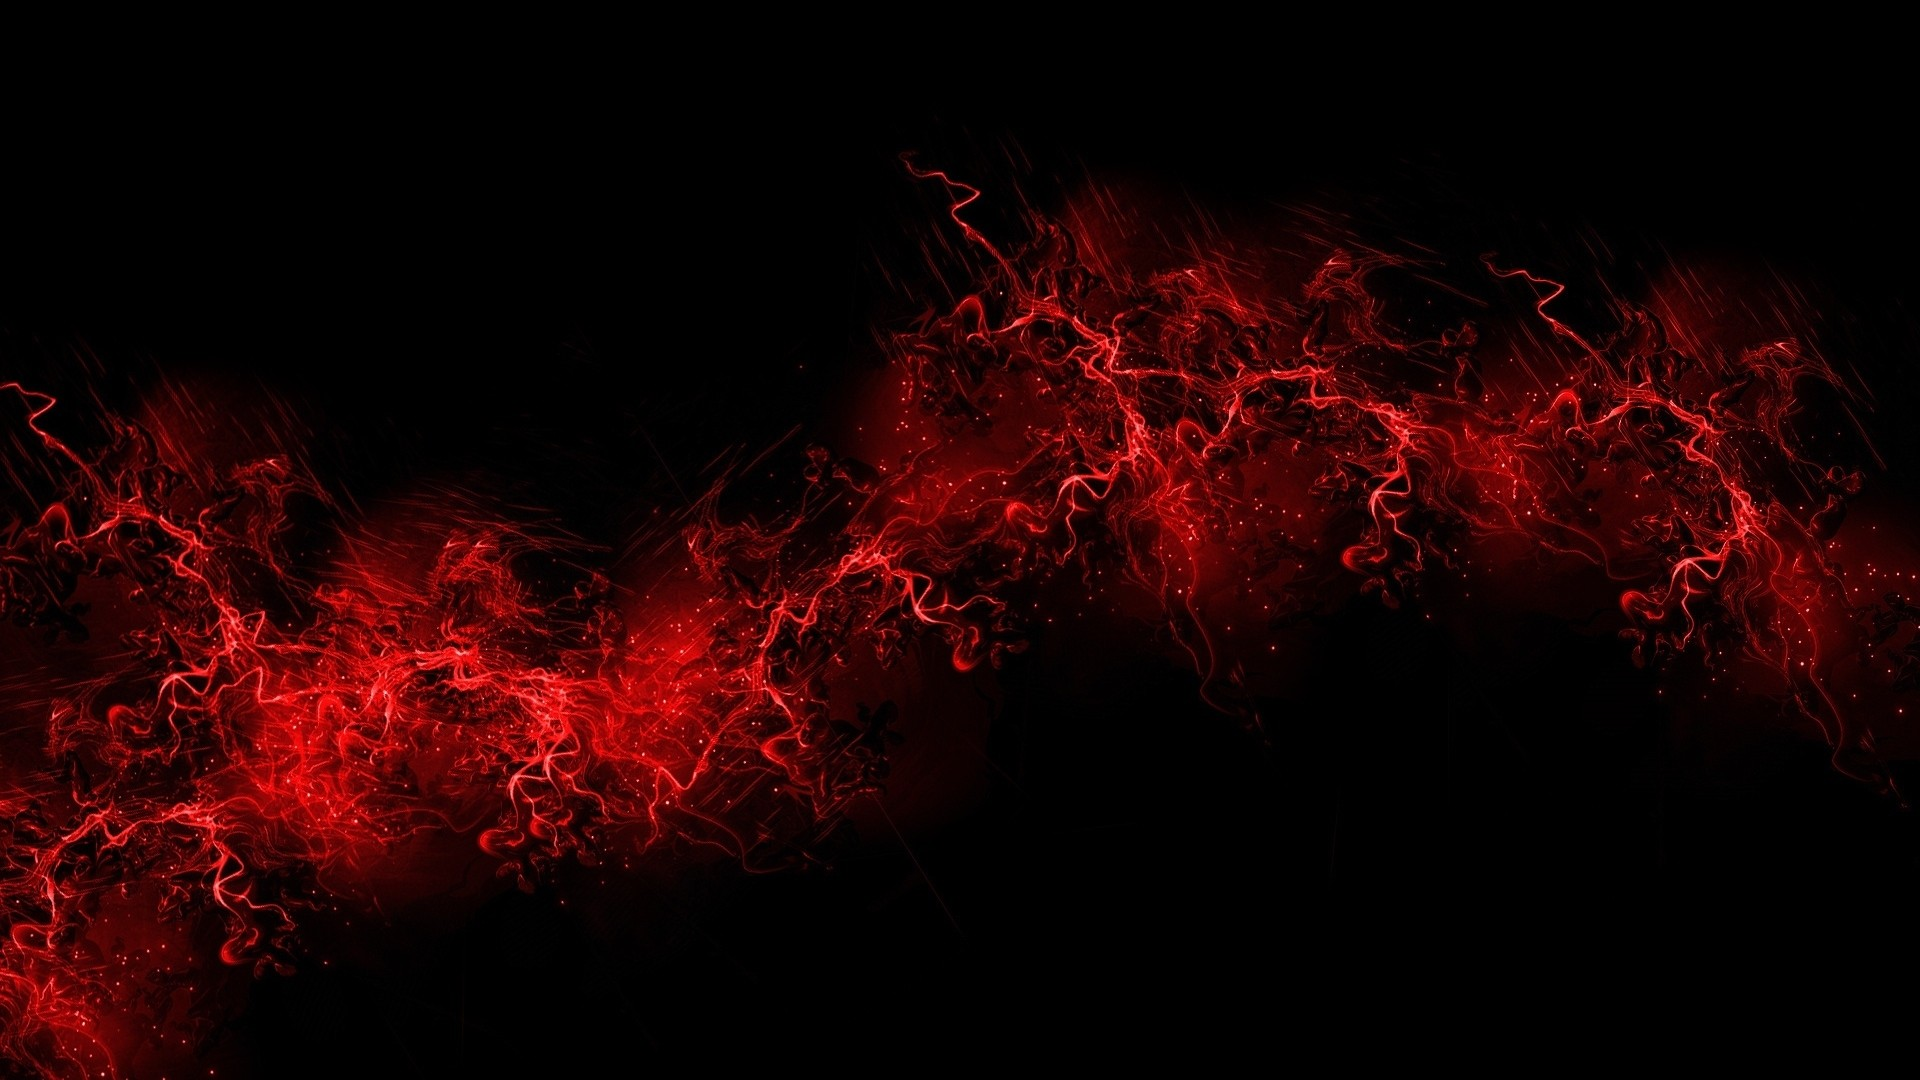 HD background images red and black – Full Hd 1080p Abstract Wallpapers  Desktop Backgrounds Hd inside